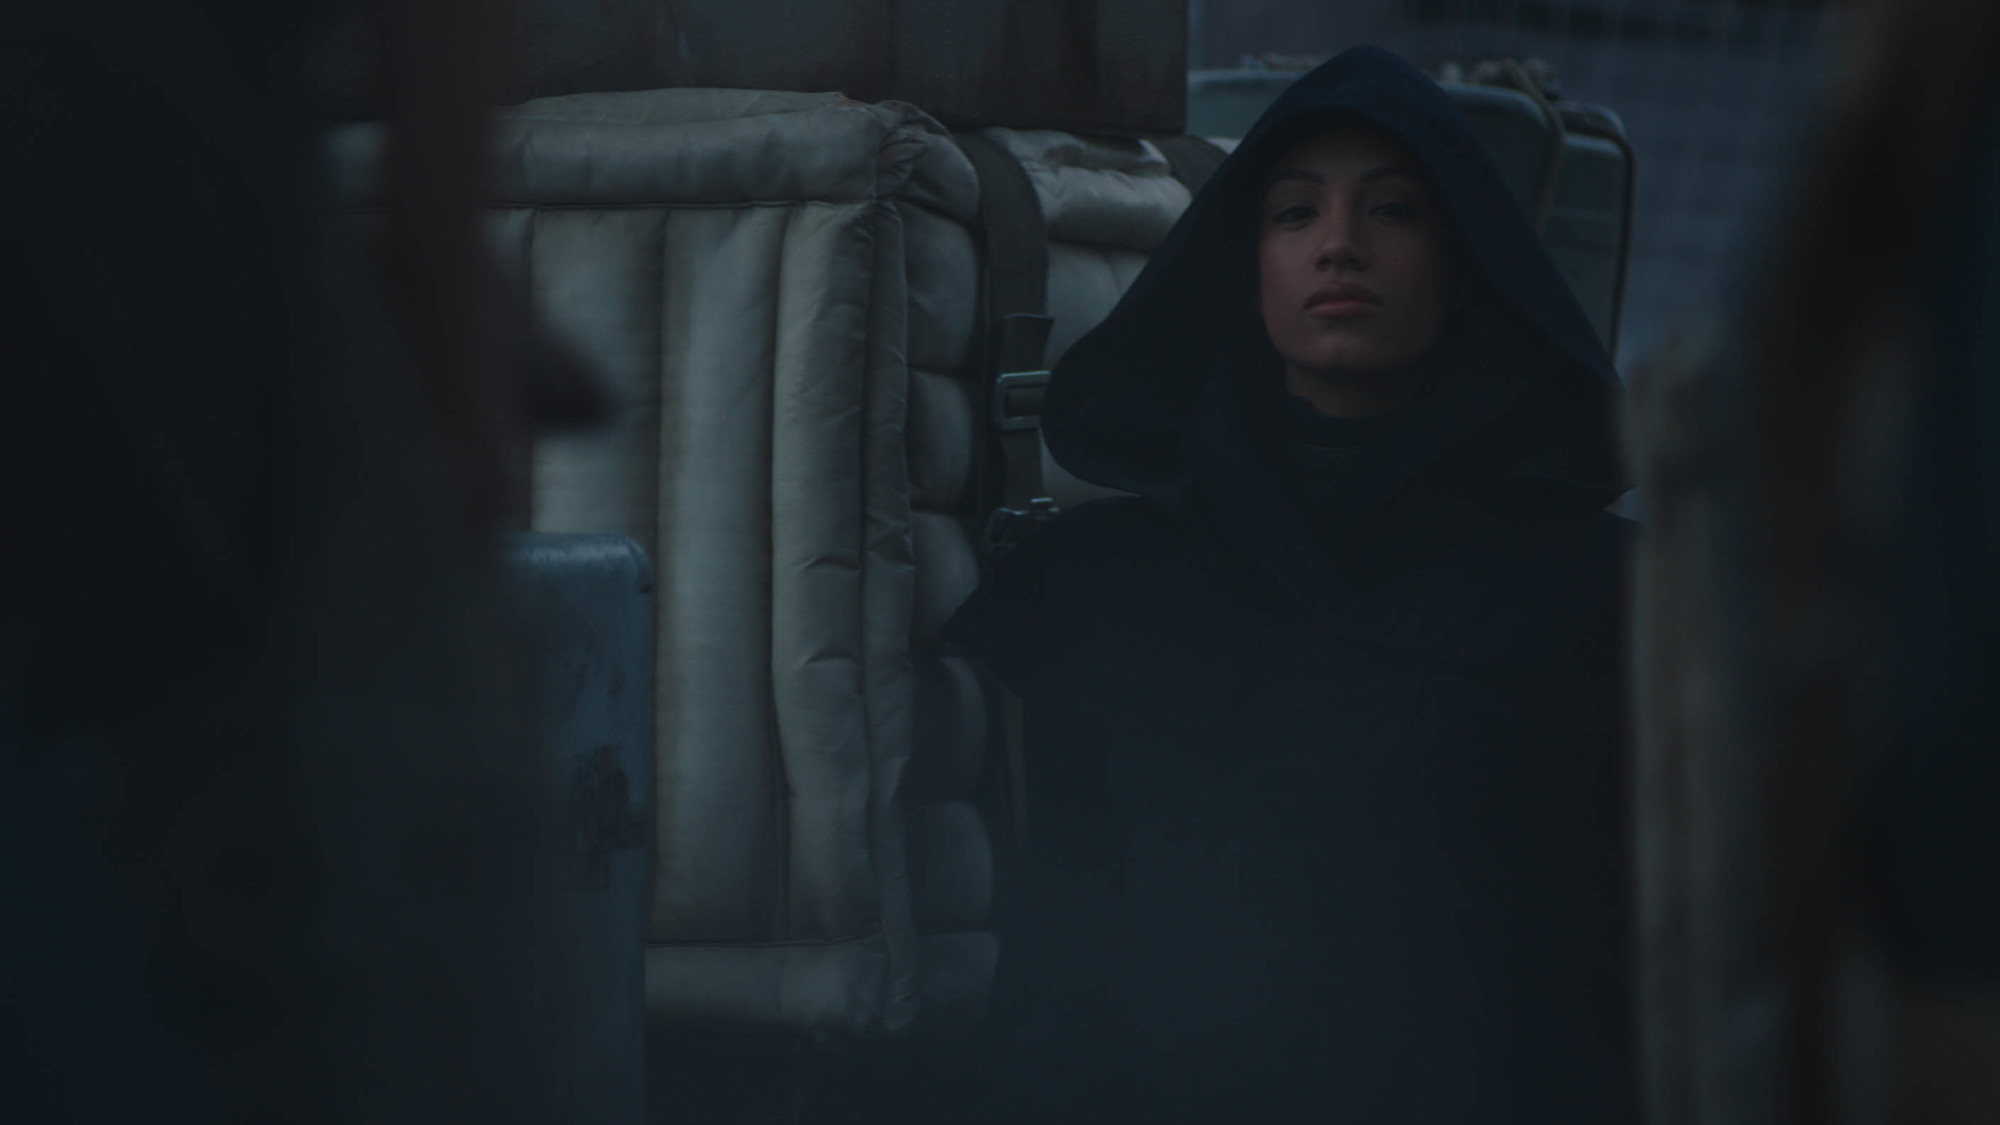 The mysterious hooded character in 'The Mandalorian' Season 2 trailer.